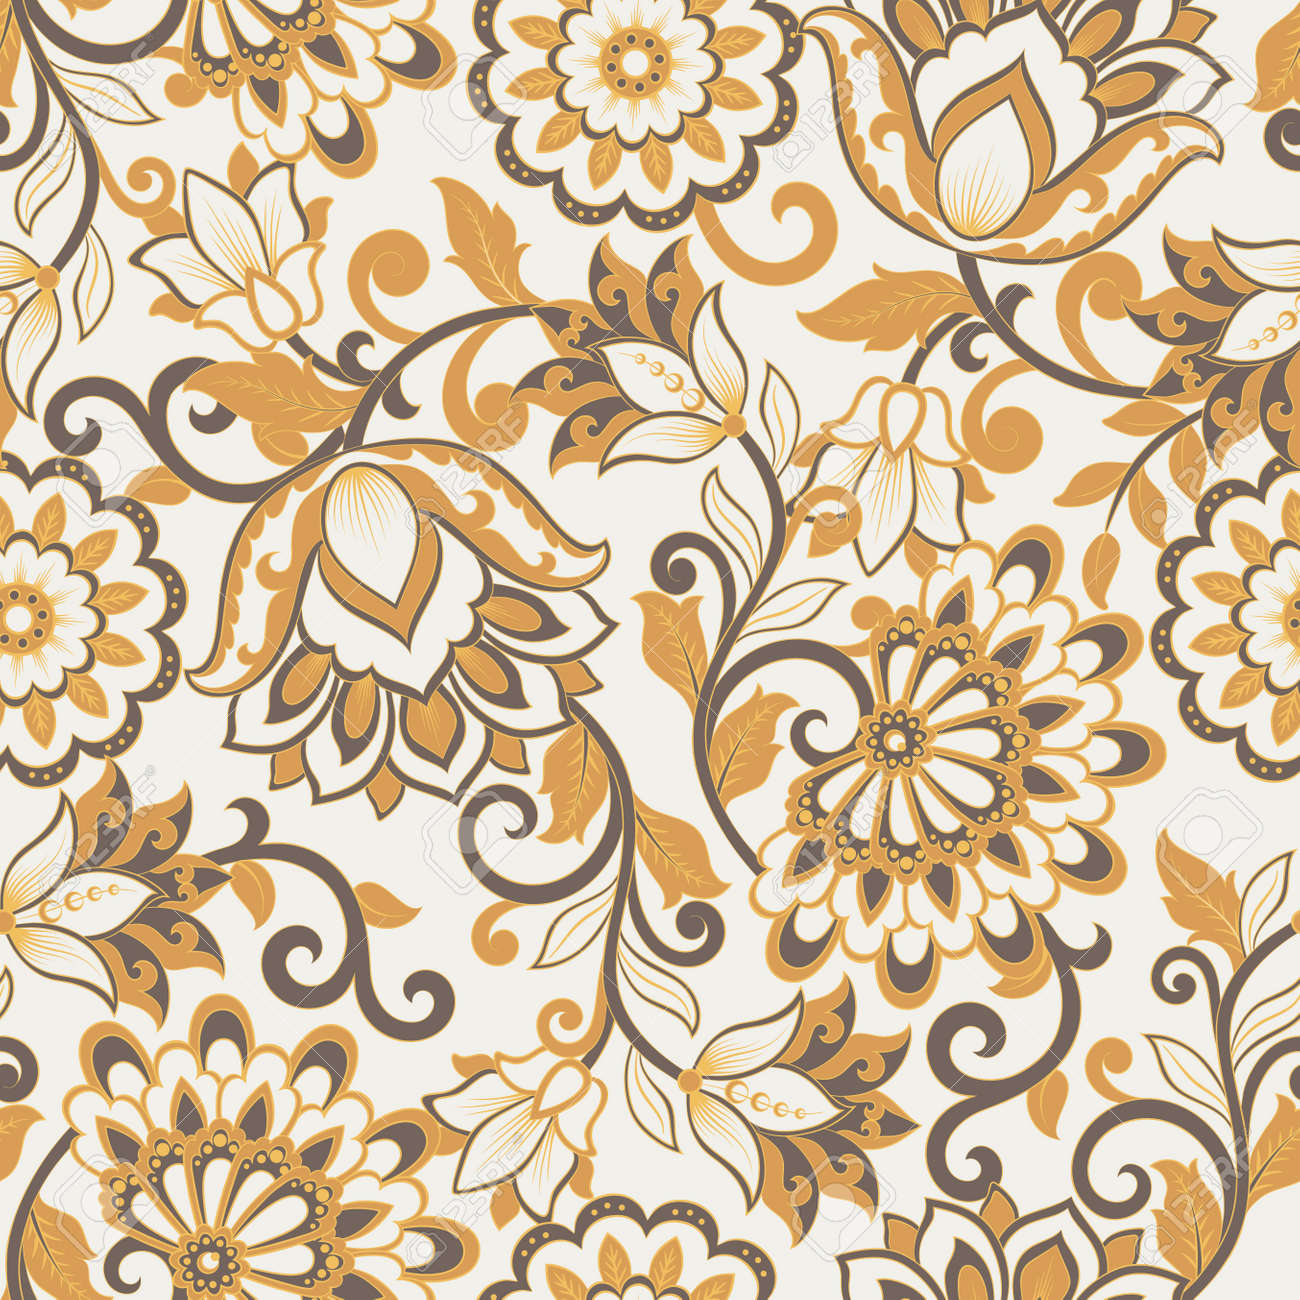 floral vector illustration in damask style. Seamless background - 138435239